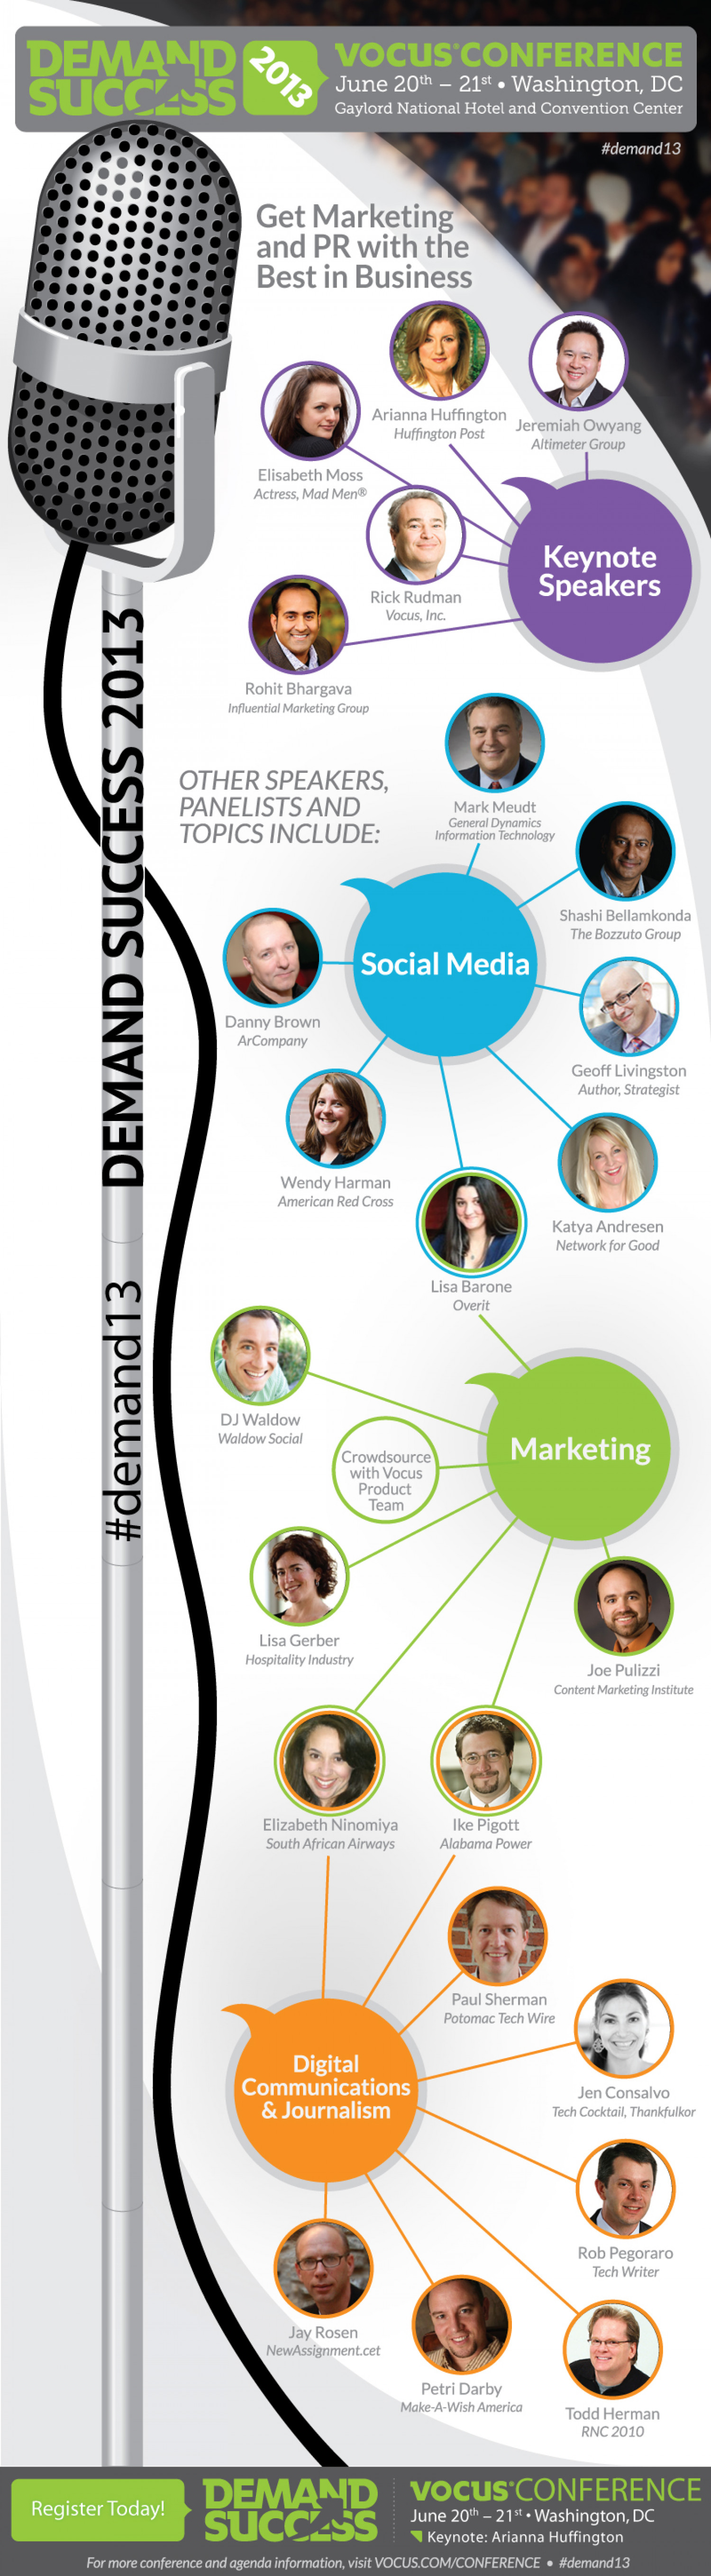 Speakers and topics at Demand Success 2013 conference Infographic